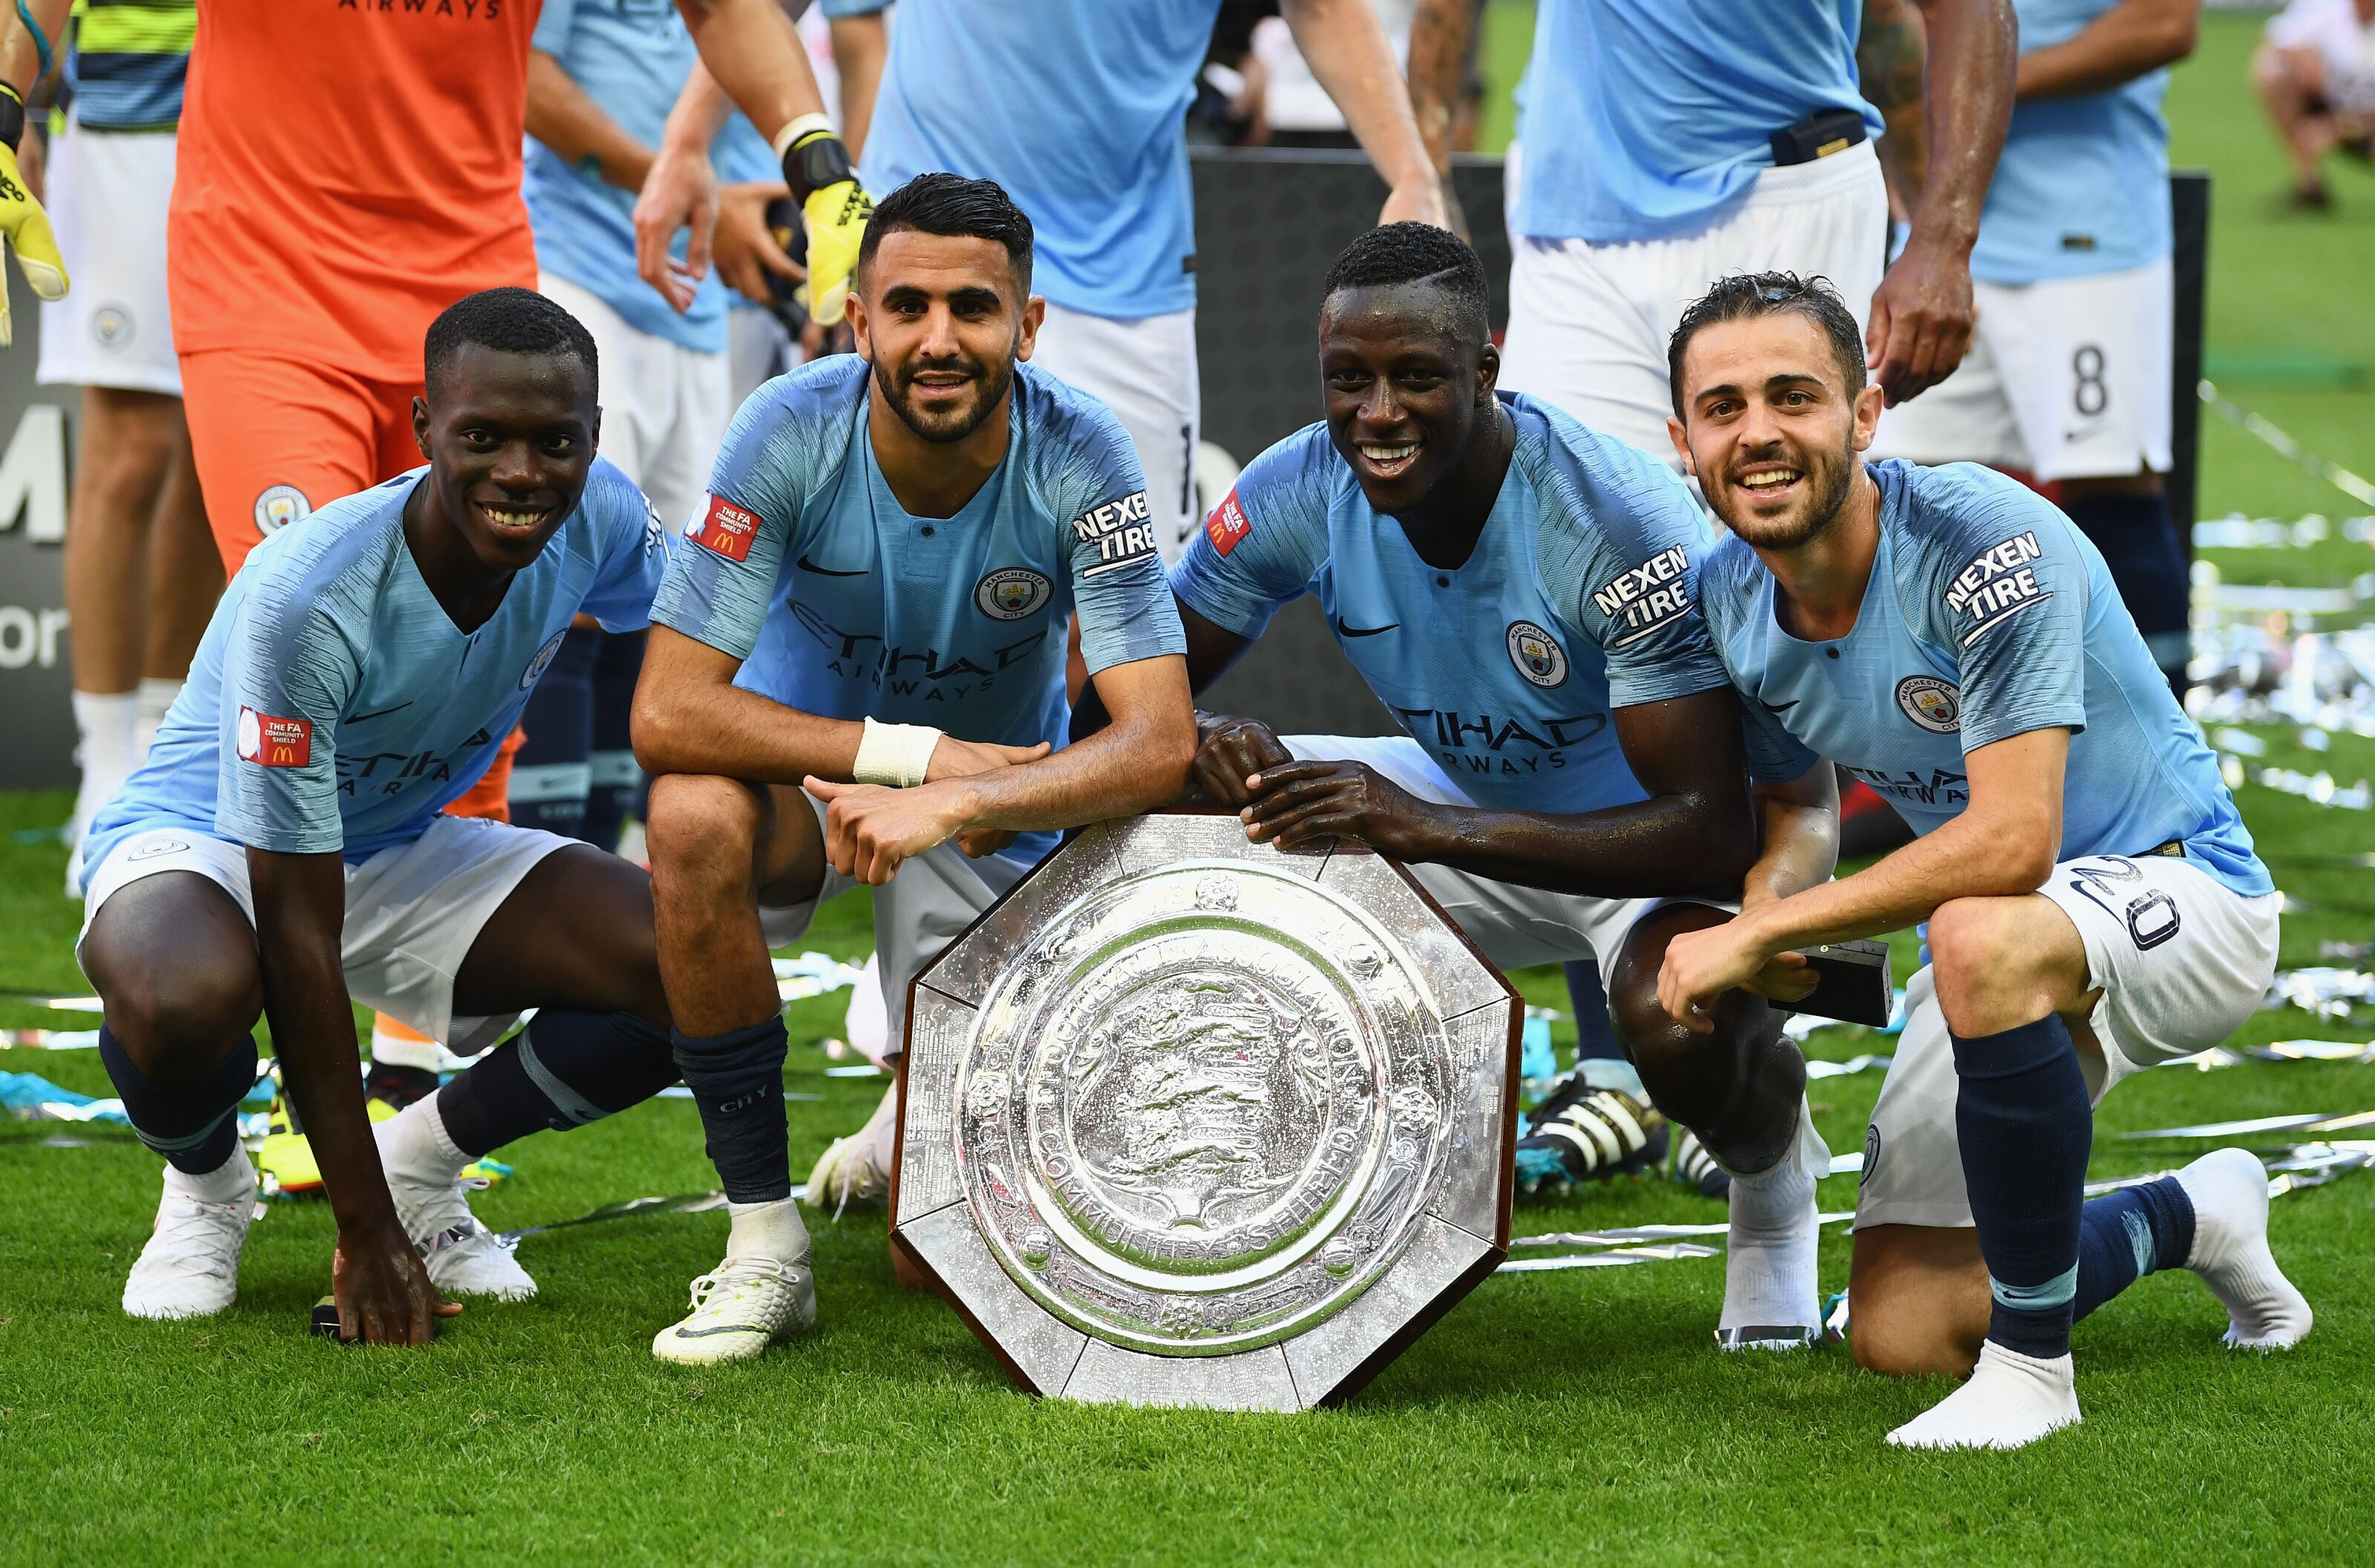 Manchester City 4 Wins at Wembley Stadium in 2018